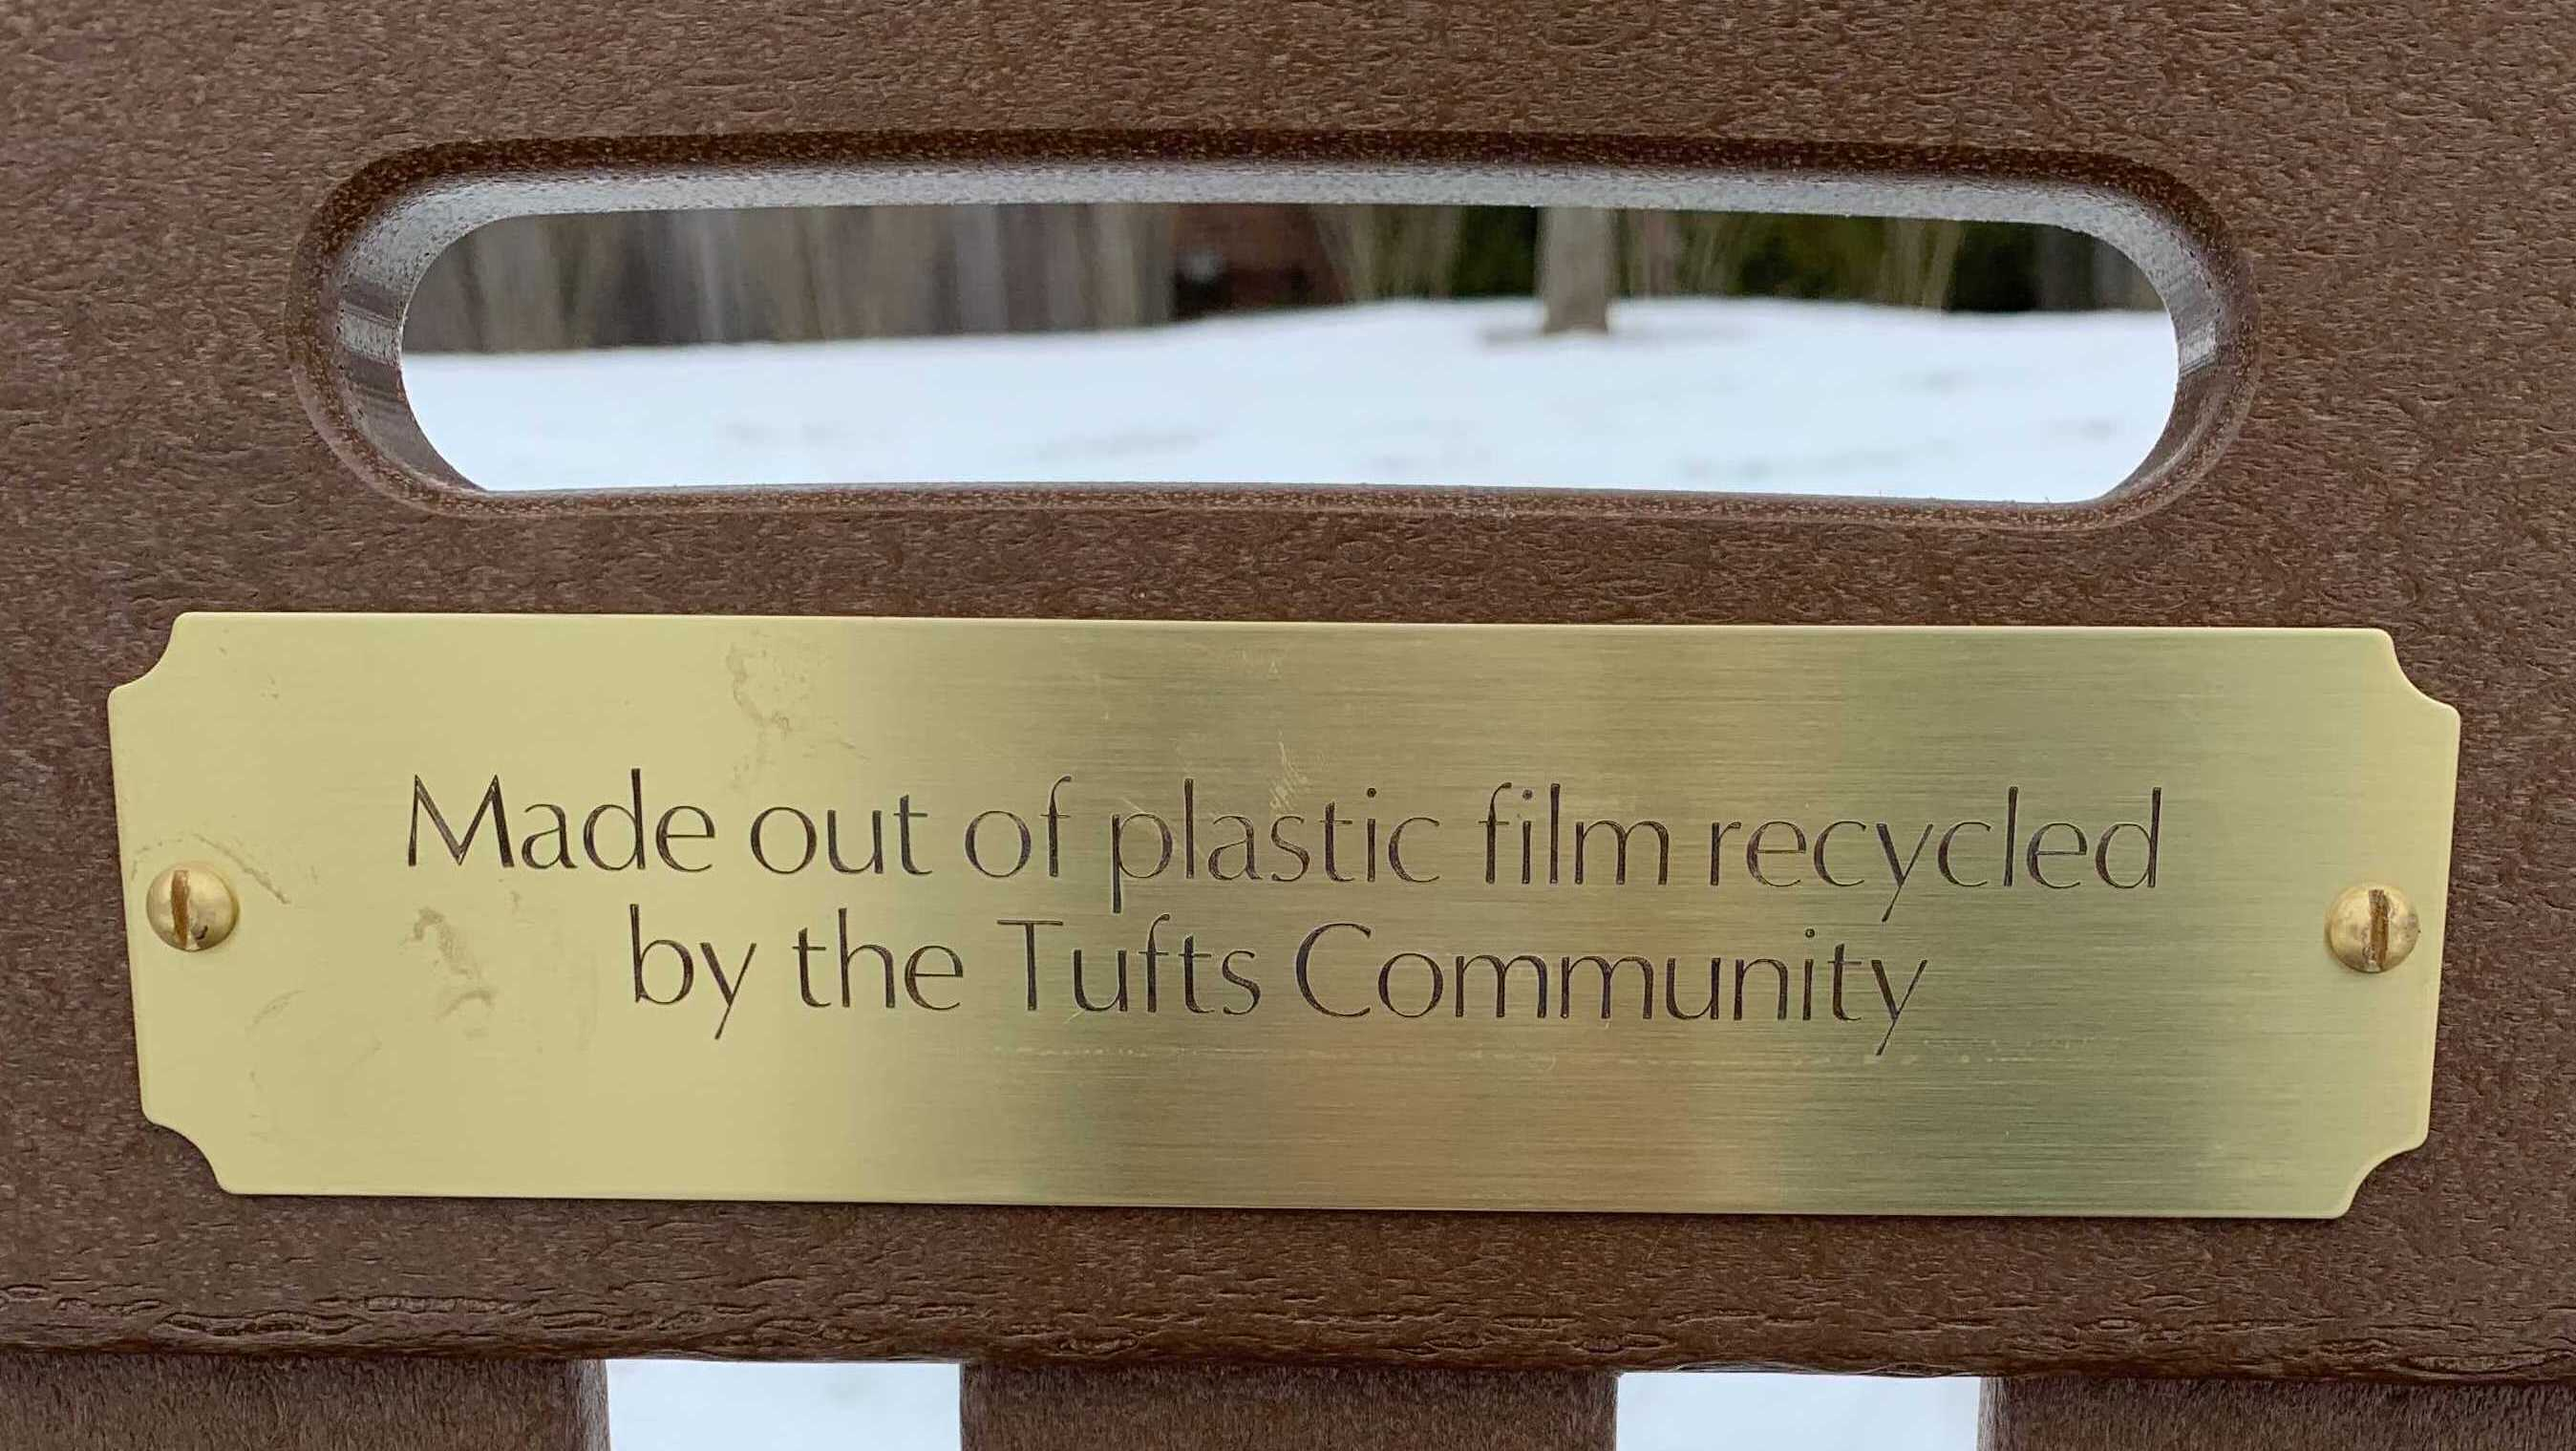 Tufts won a bench made out of recycled plastic film!